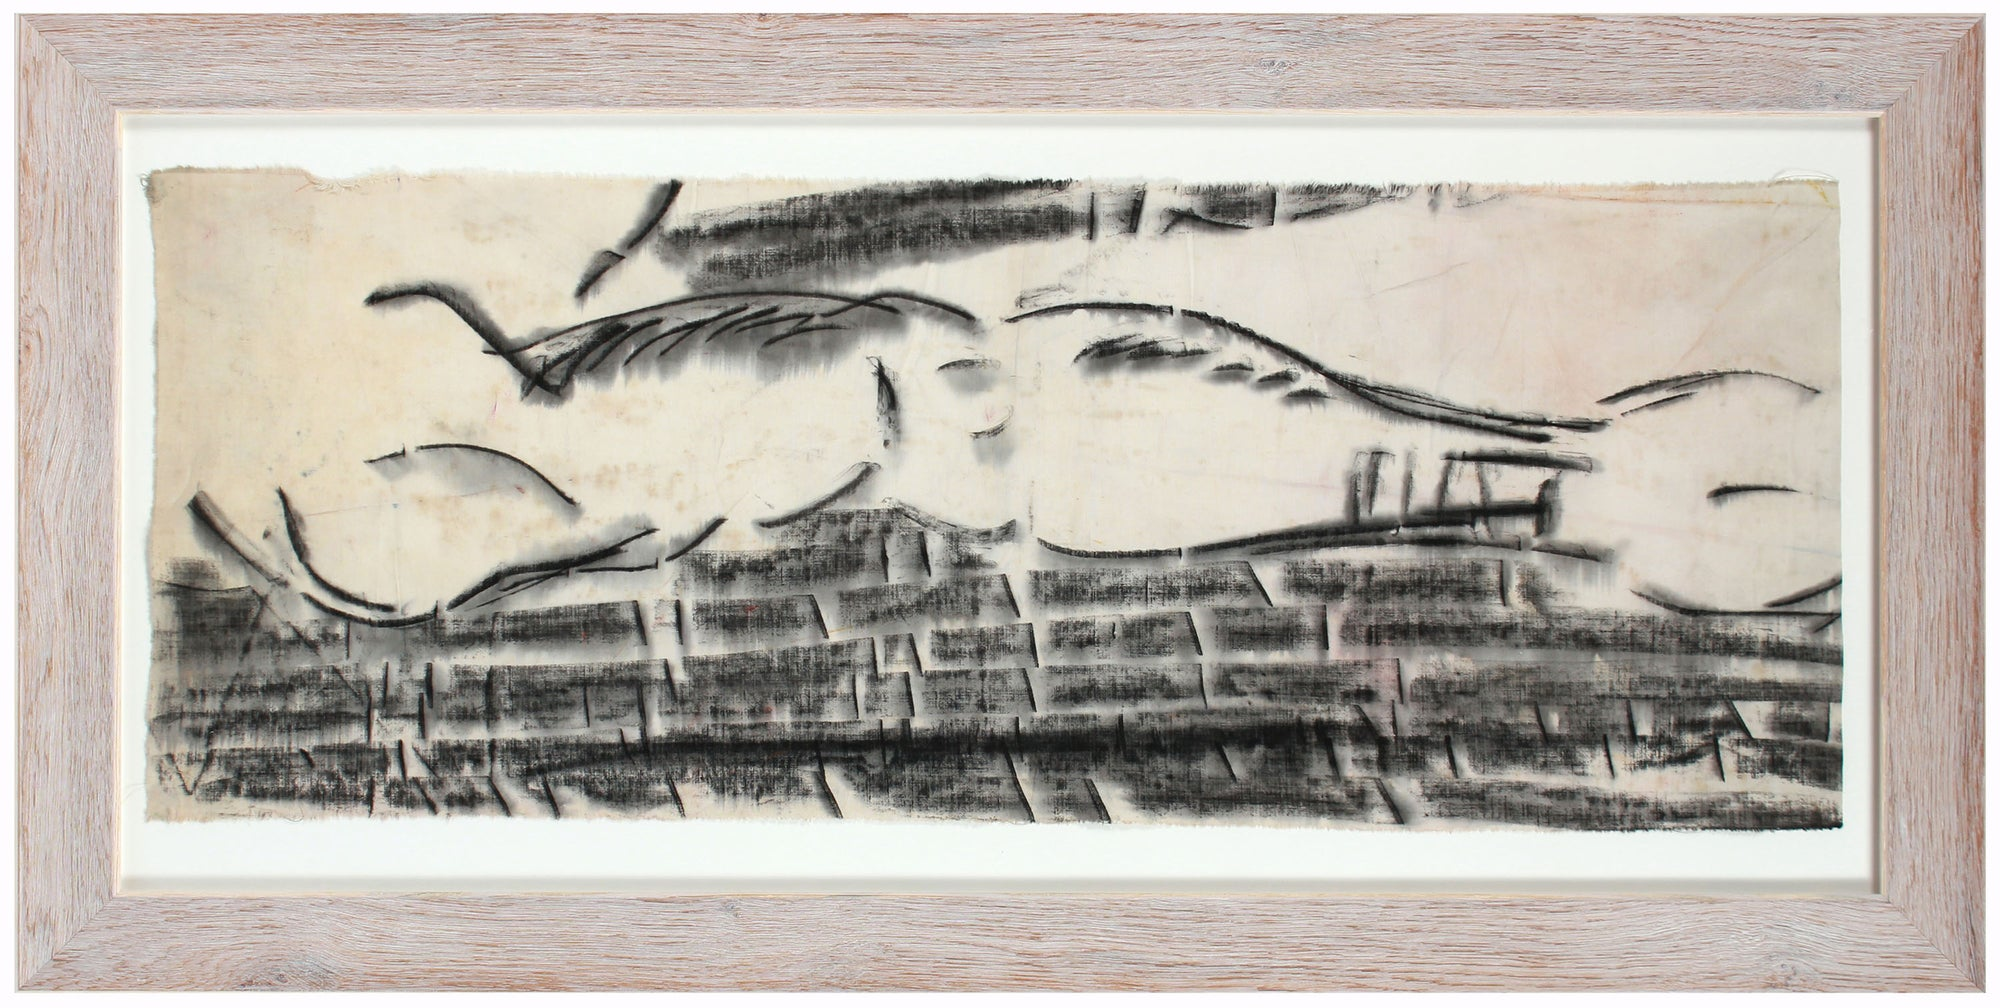 Fog Over Brick, San Francisco Abstract <br>20th Century Ink on Fabric <br><br>#A8002